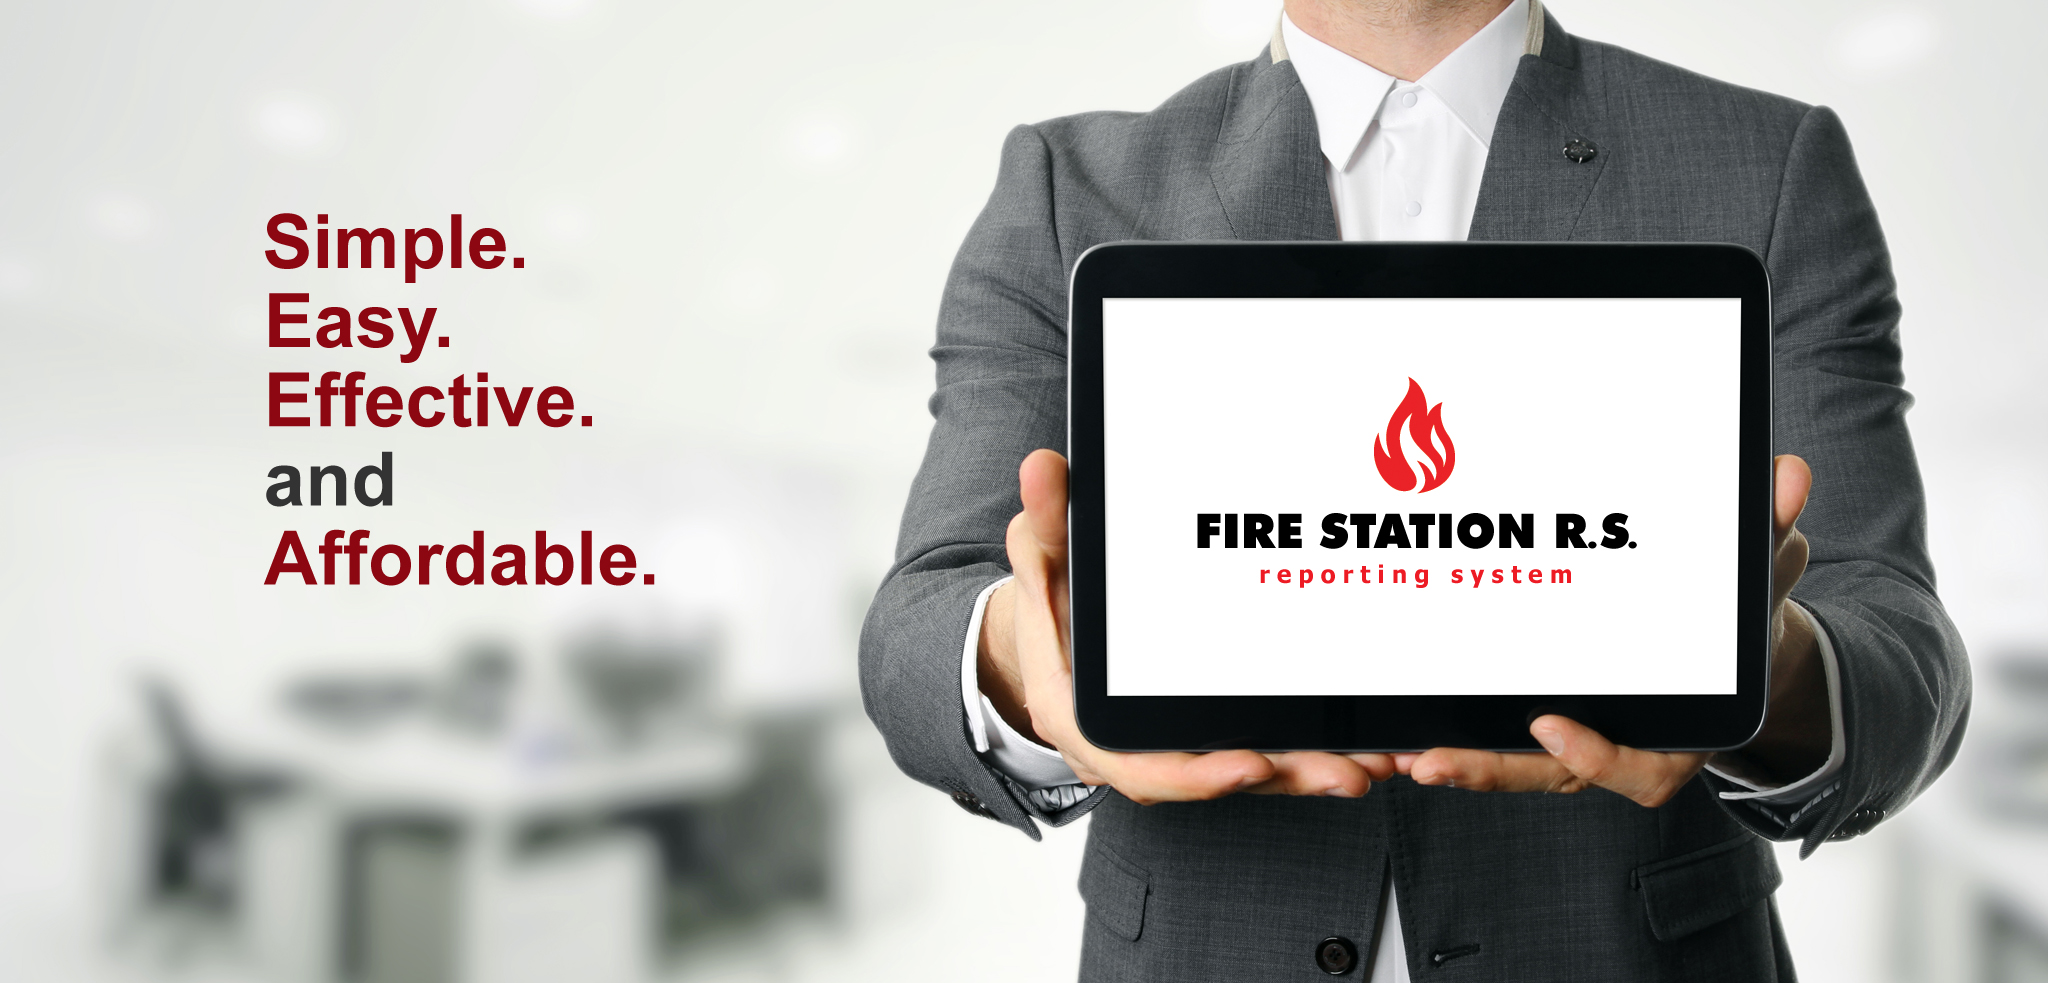 Fire Station R.S. is easy, simple, effective and affordable.